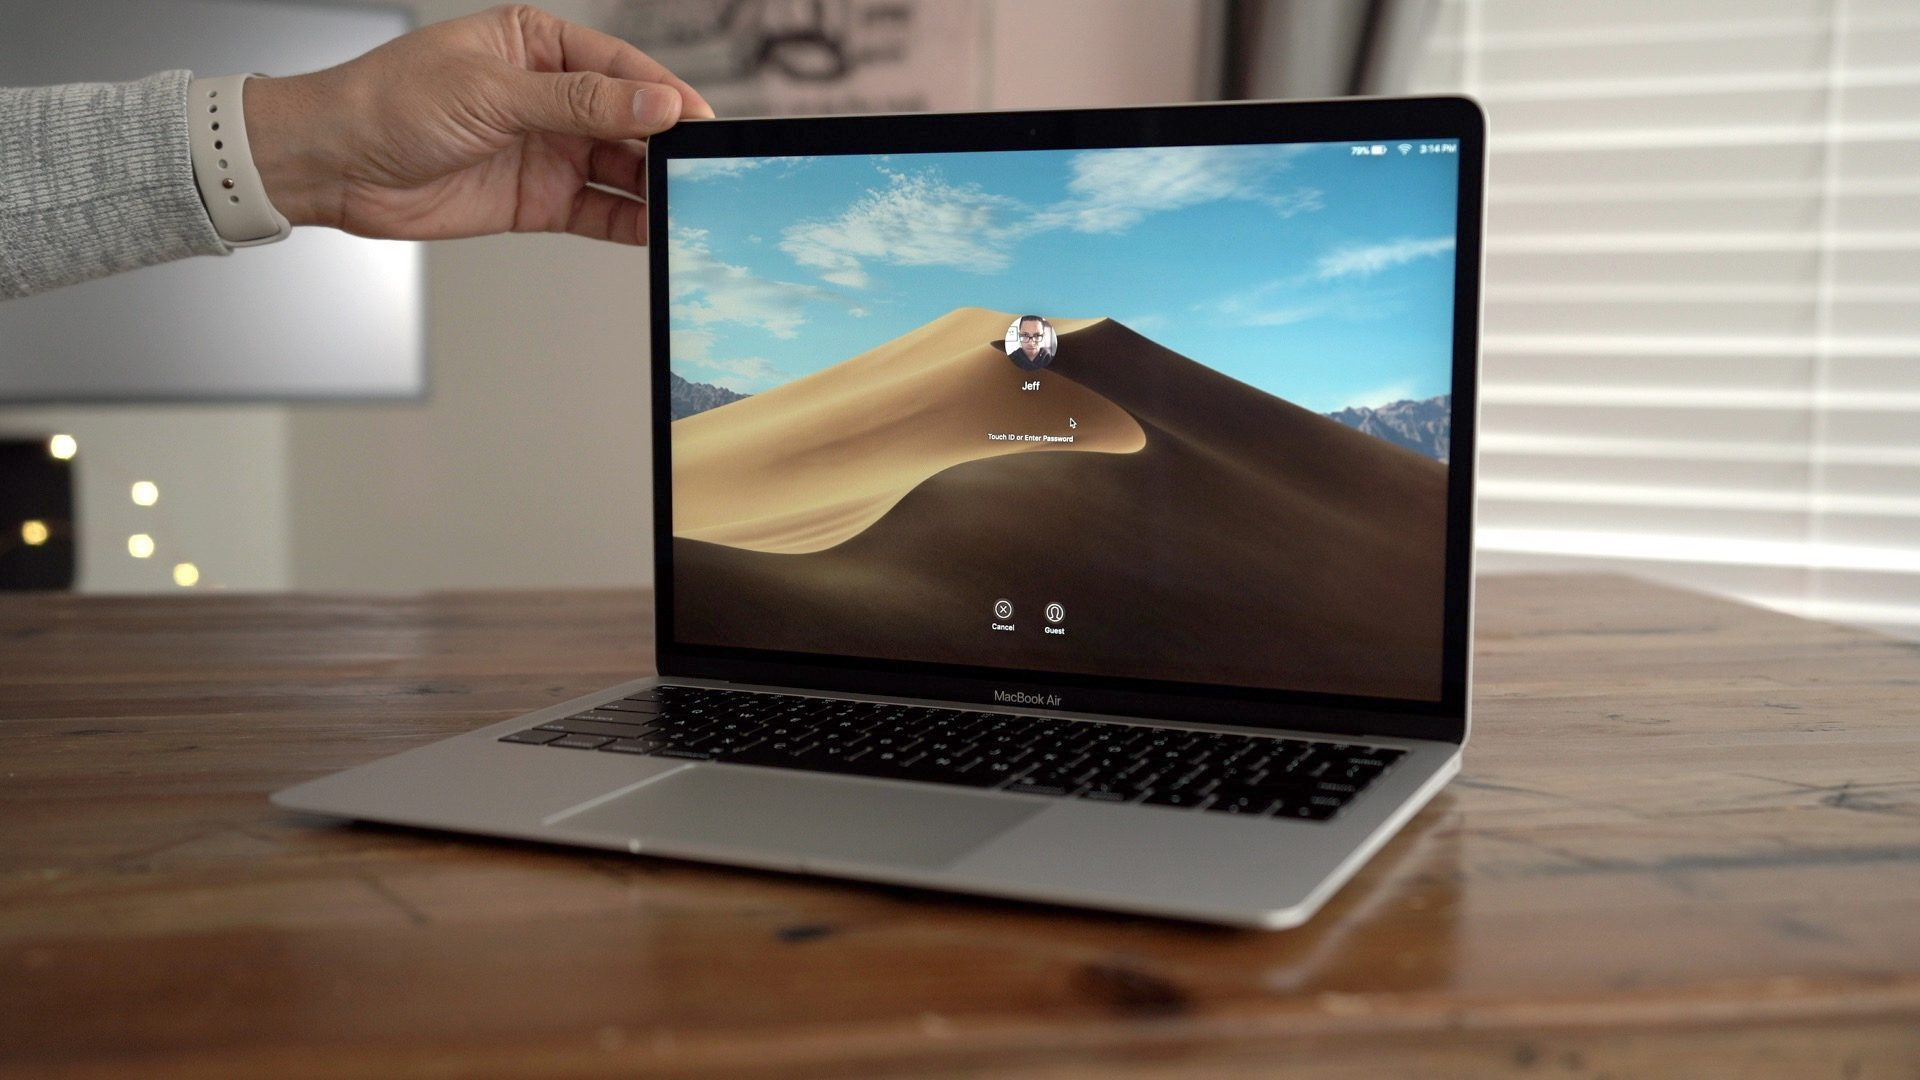 9to5Rewards: Win Apple's new MacBook Air from Setapp & 9to5Mac [Giveaway]